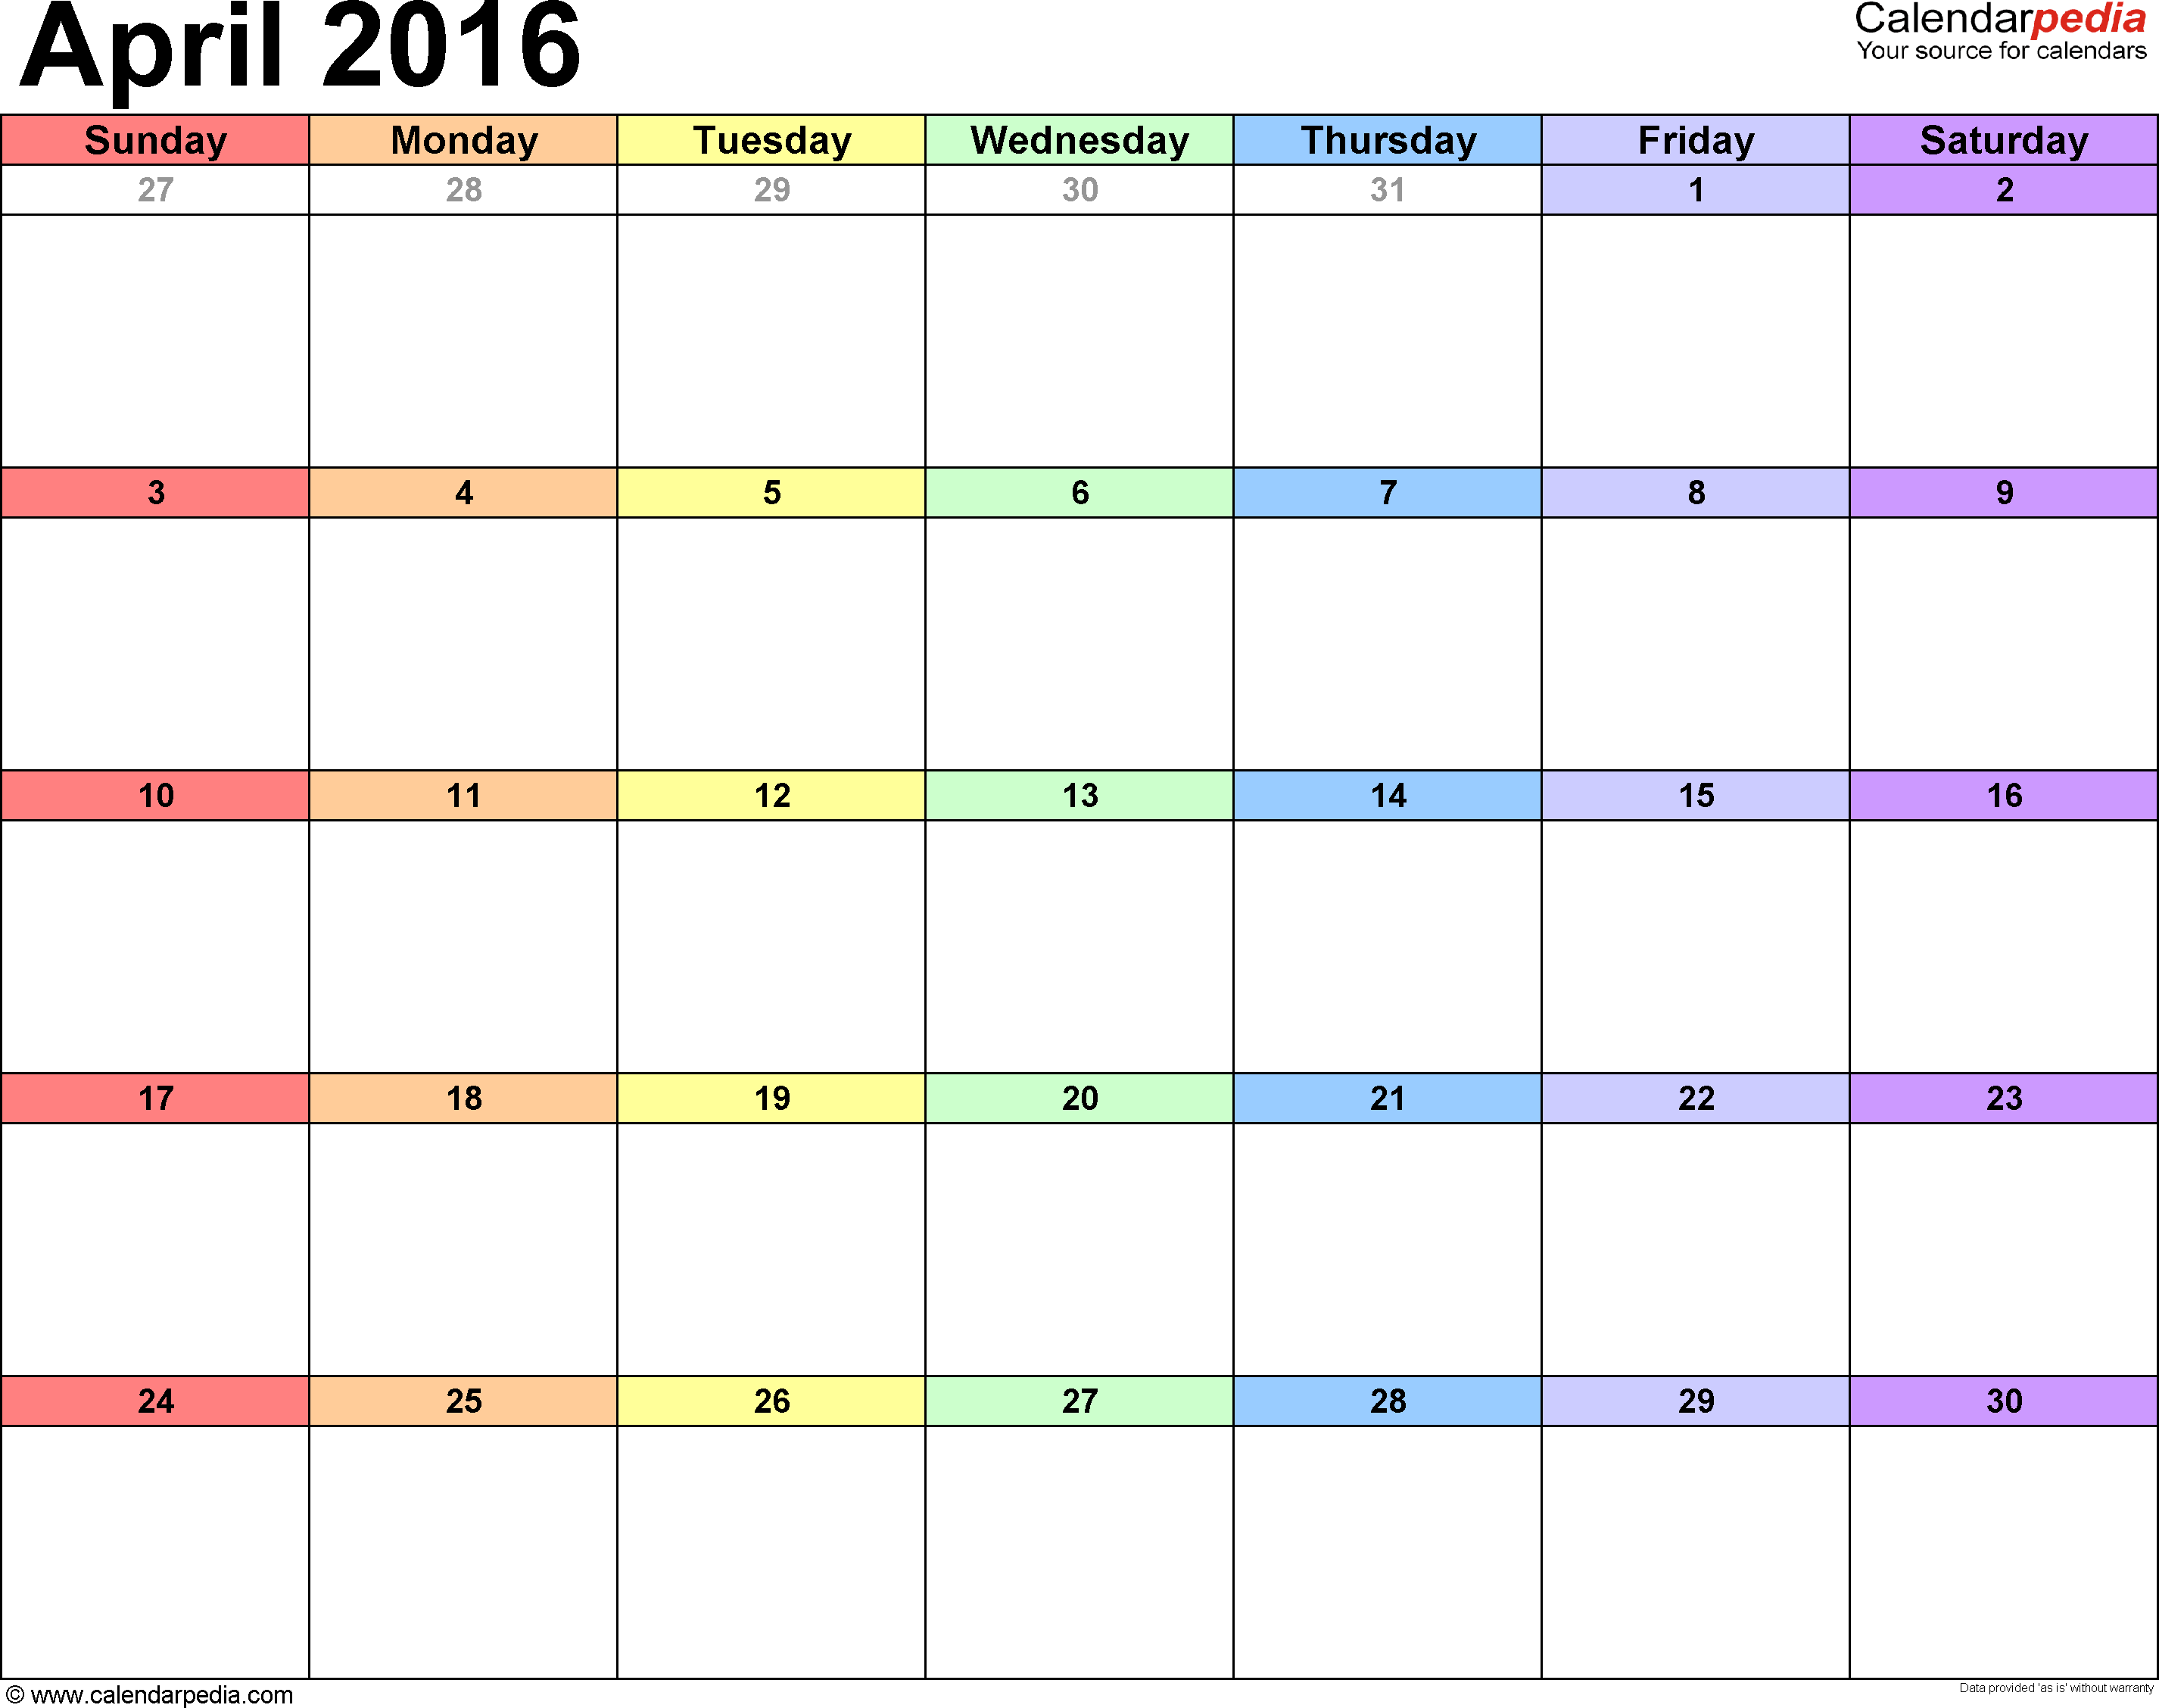 2016 Calendar Template With Moons | New Calendar Template Site